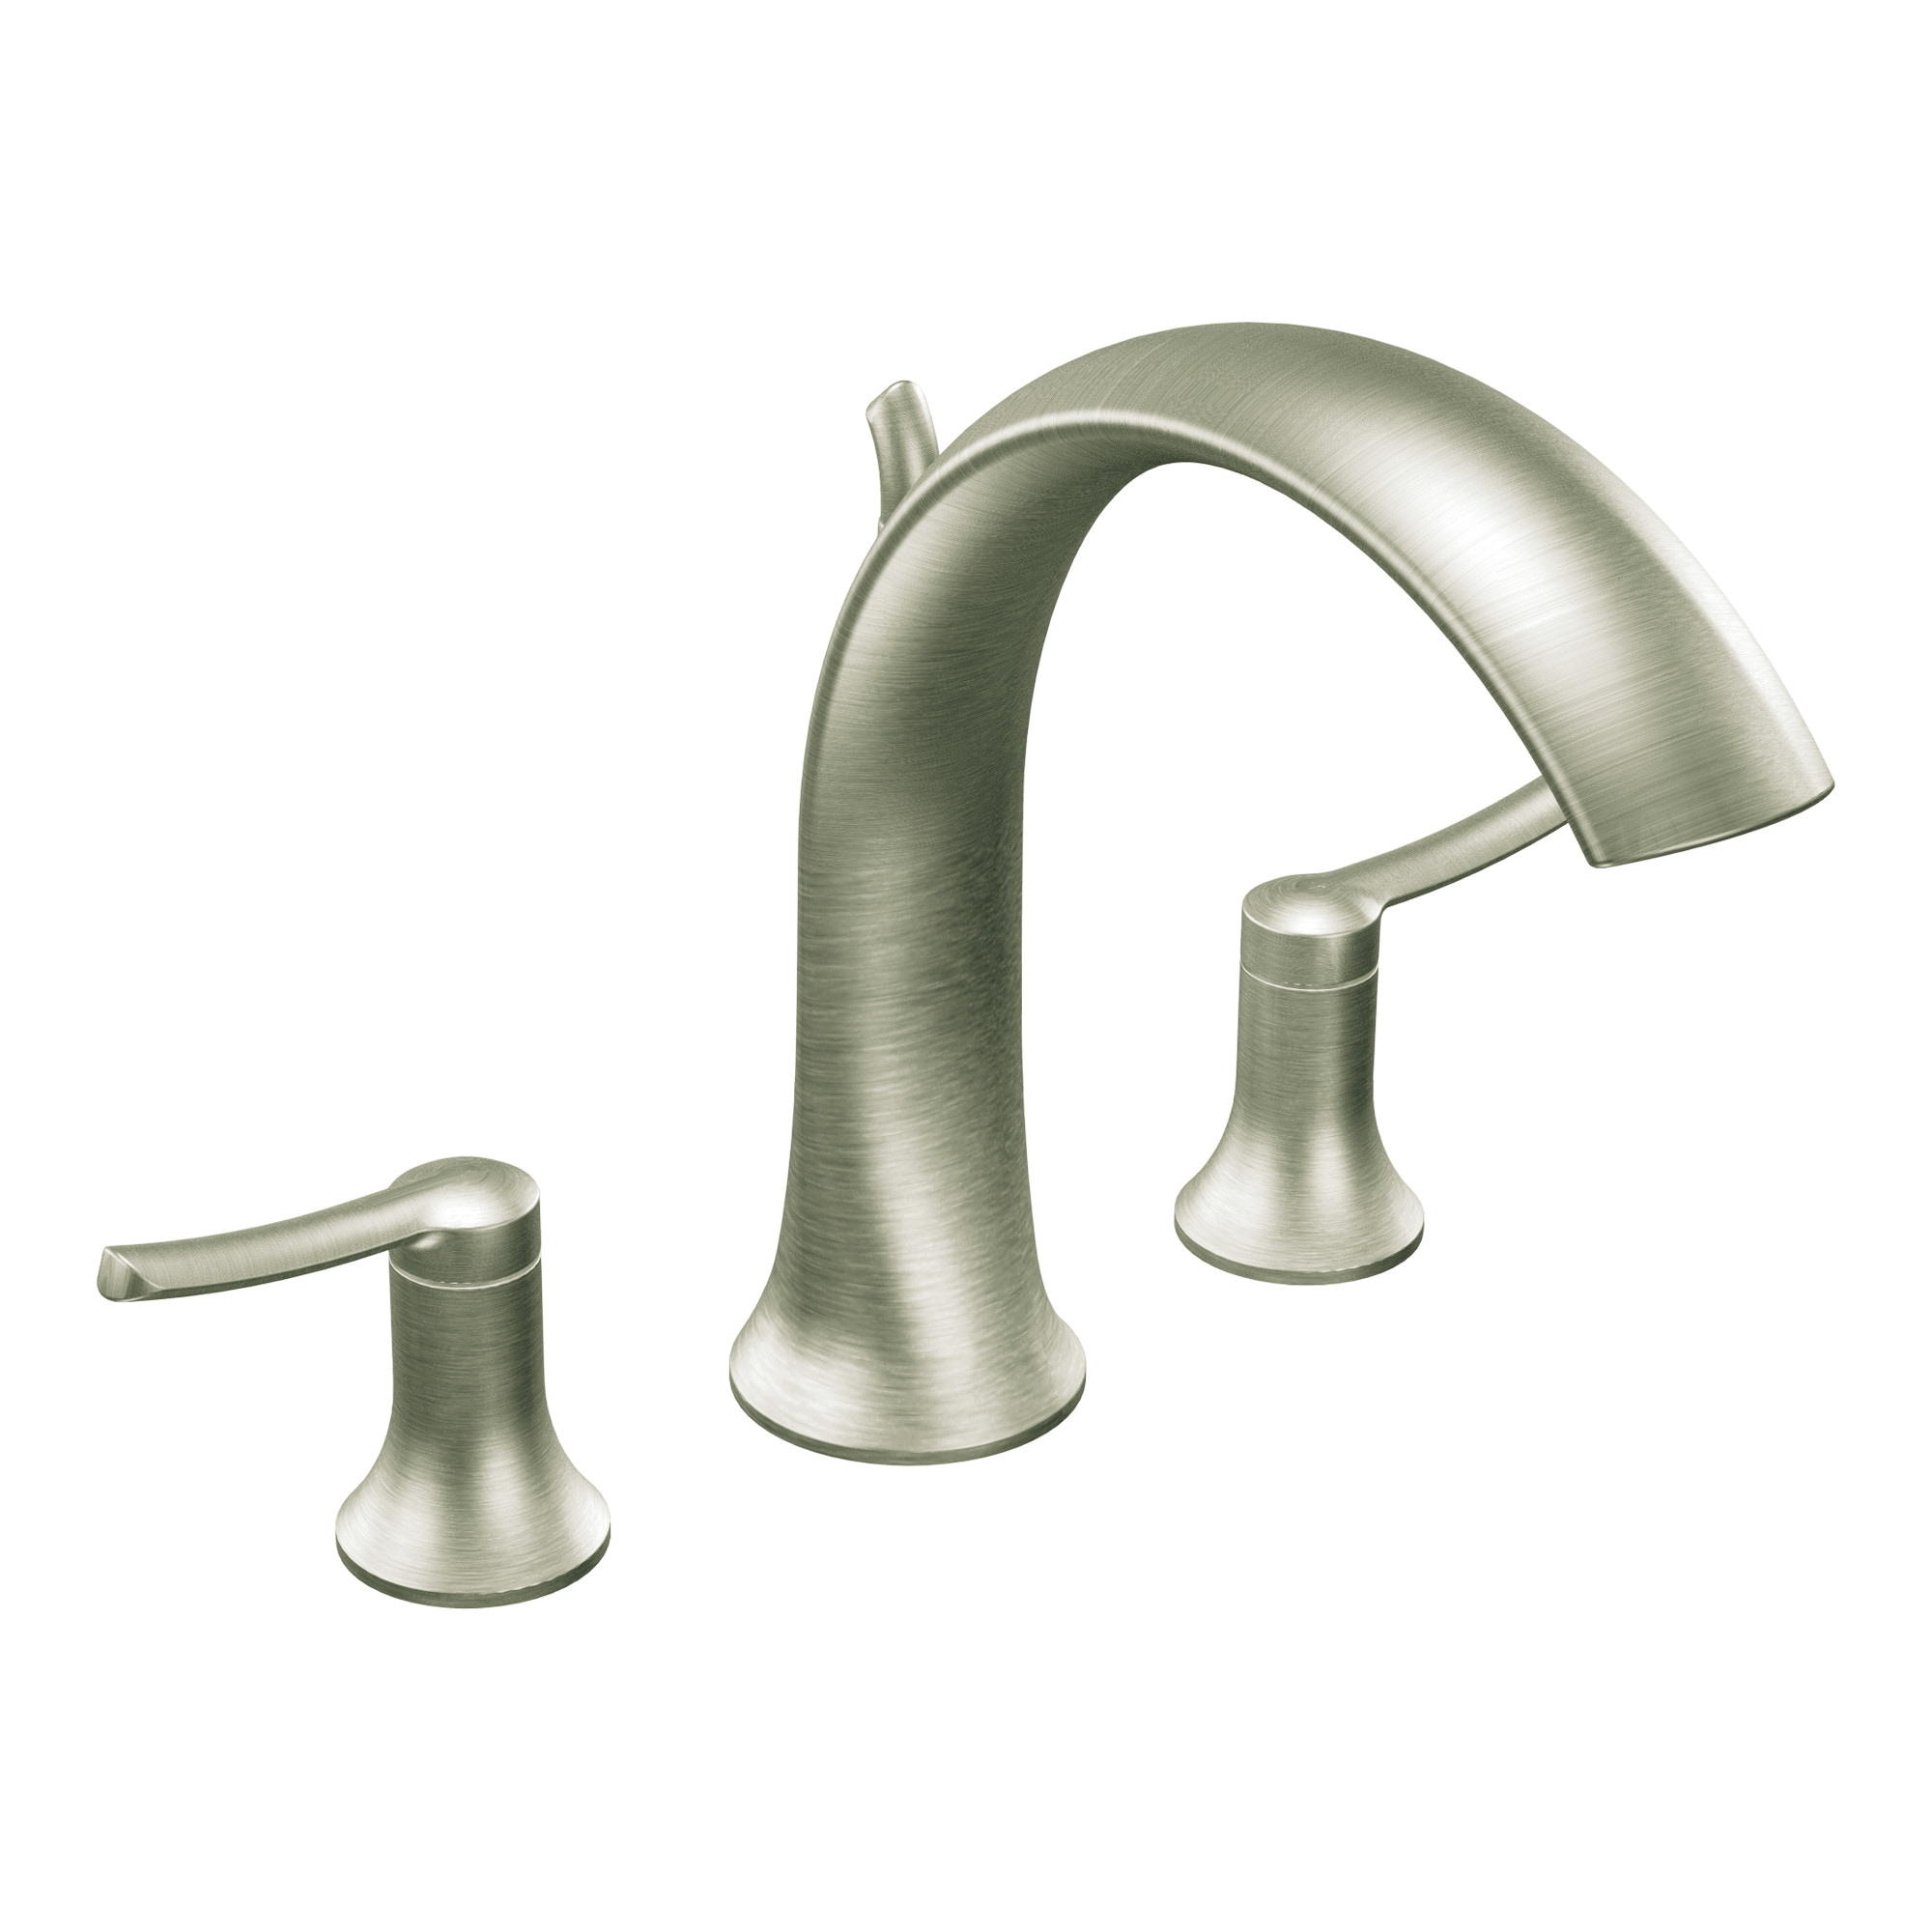 Moen Brushed Nickel Two-Handle High Arc Roman Tub Faucet